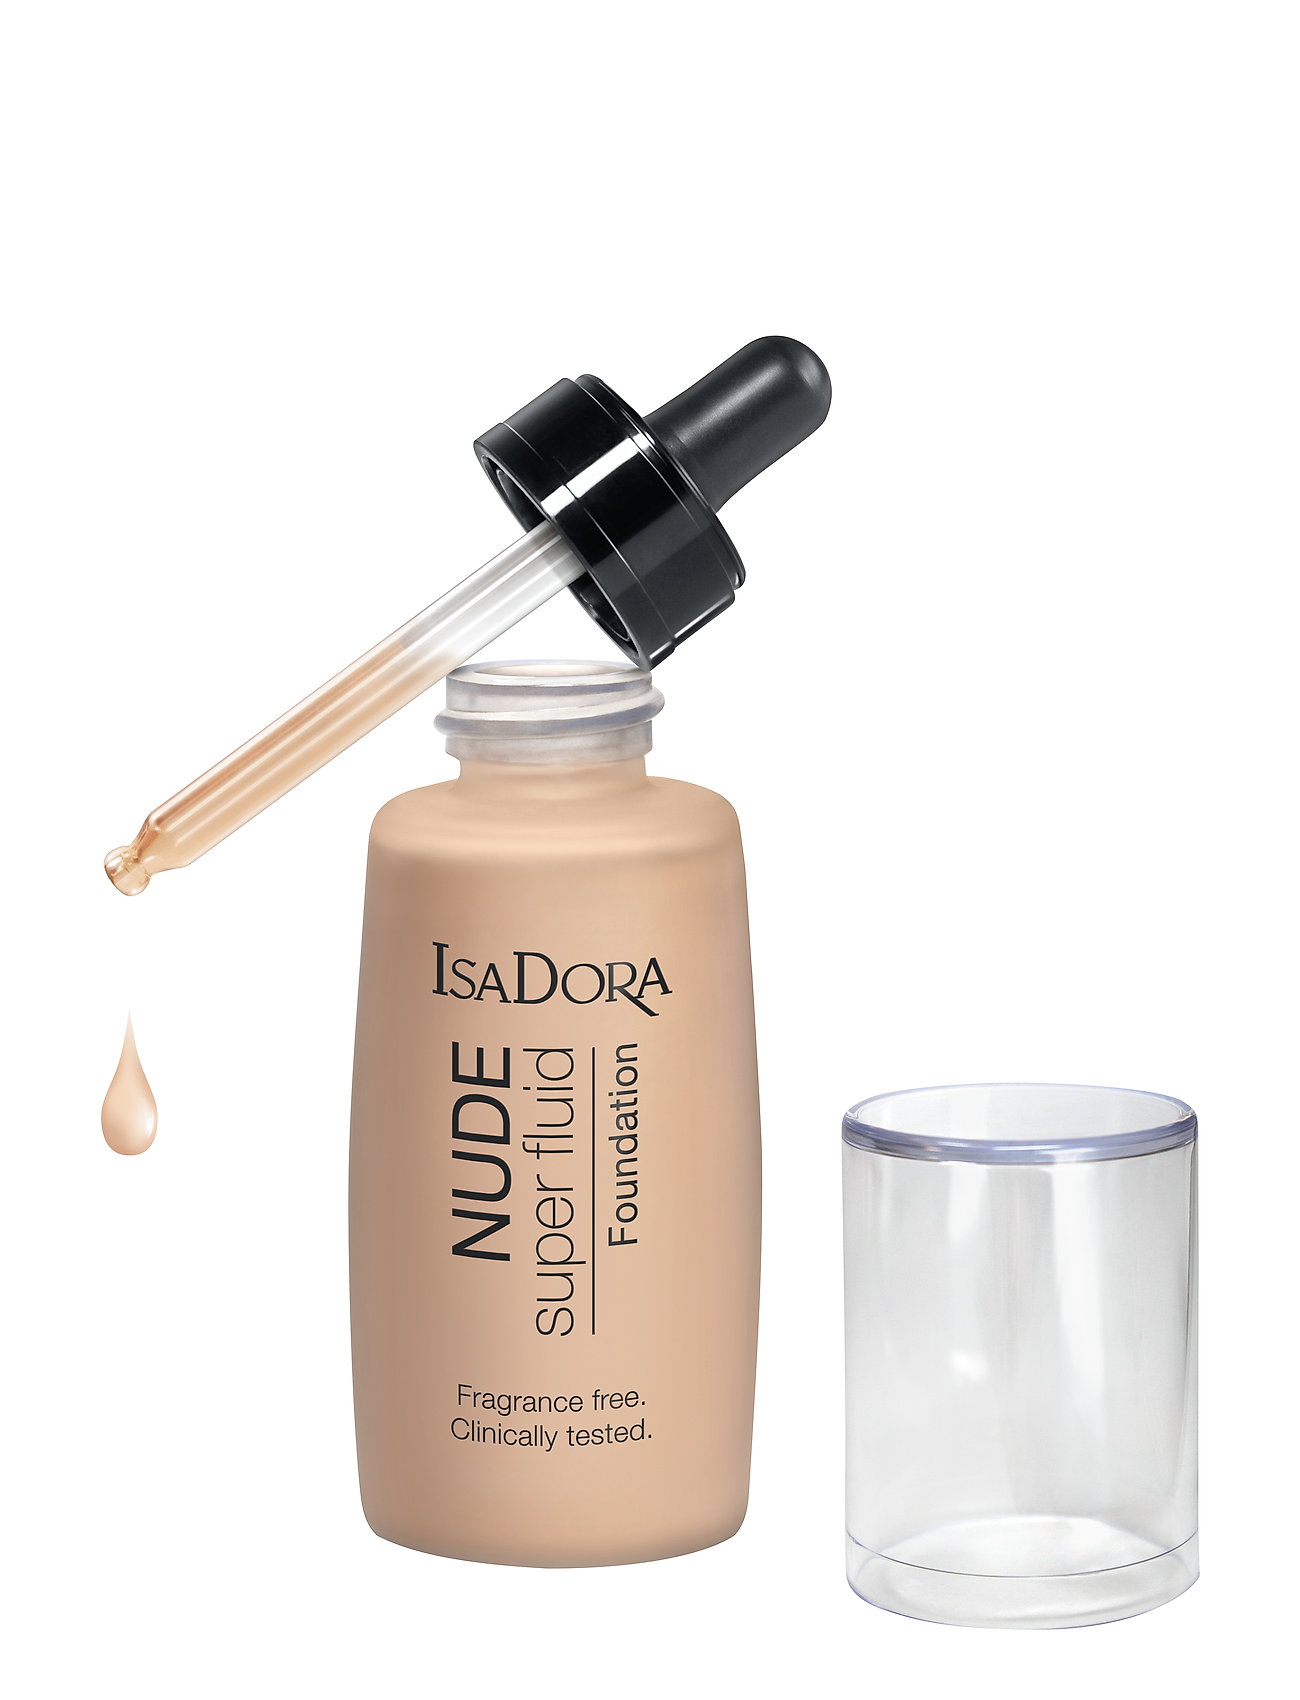 Image of Nude Fluid Foundation 10 Nude Porcelain Foundation Makeup Isadora (3285791299)